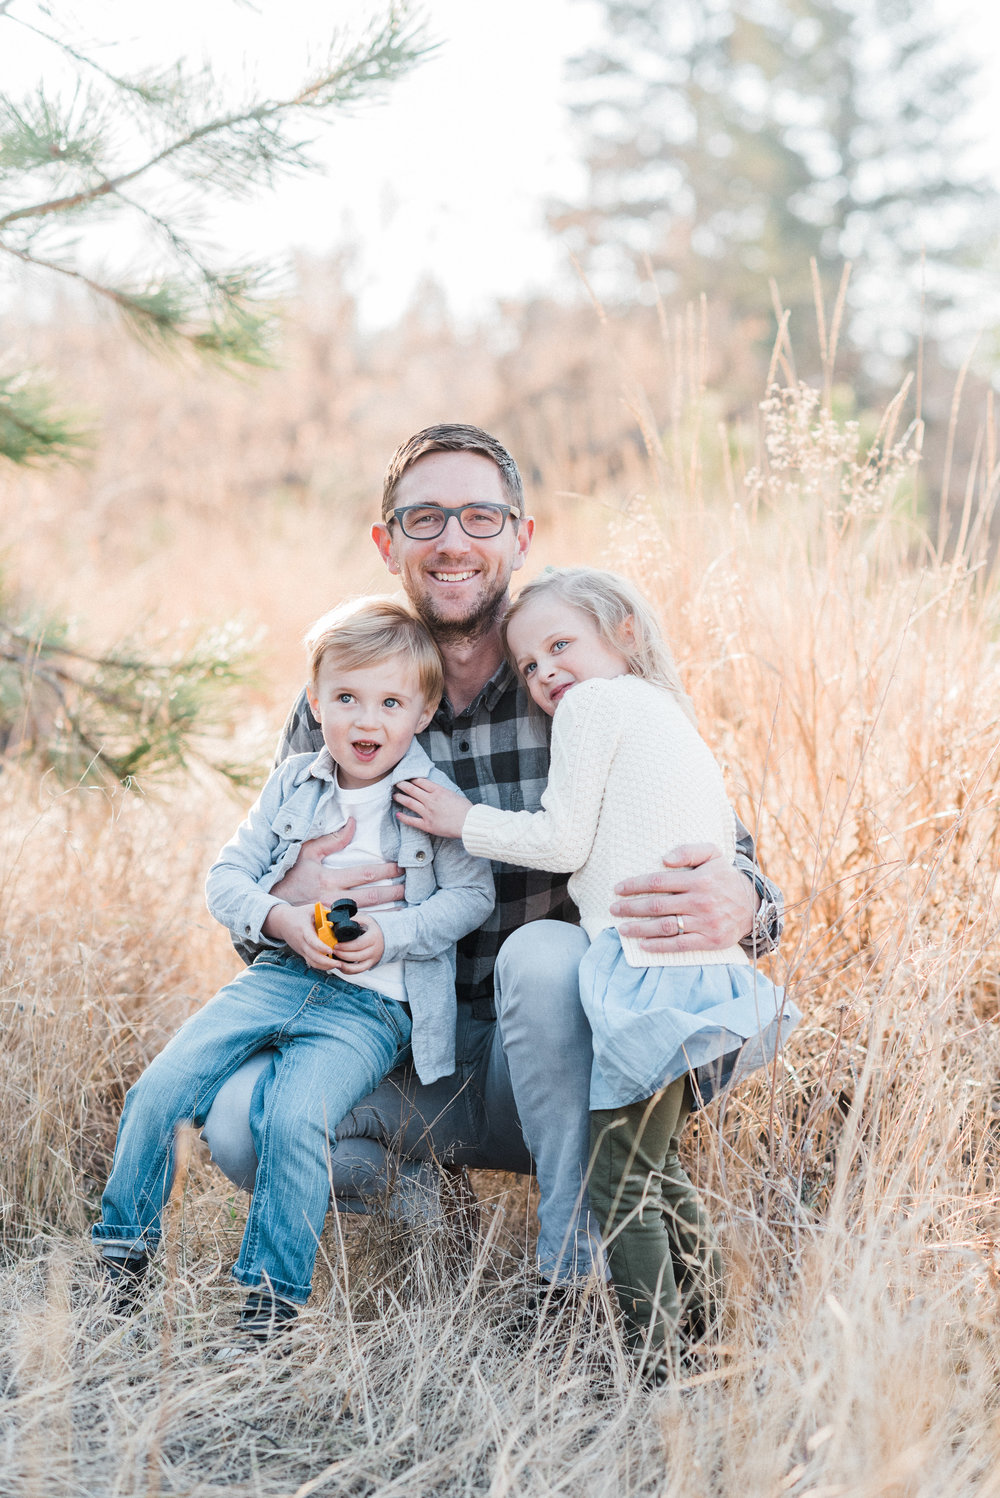 fall-family-photos-spokane-wa-bloom (17 of 32).jpg